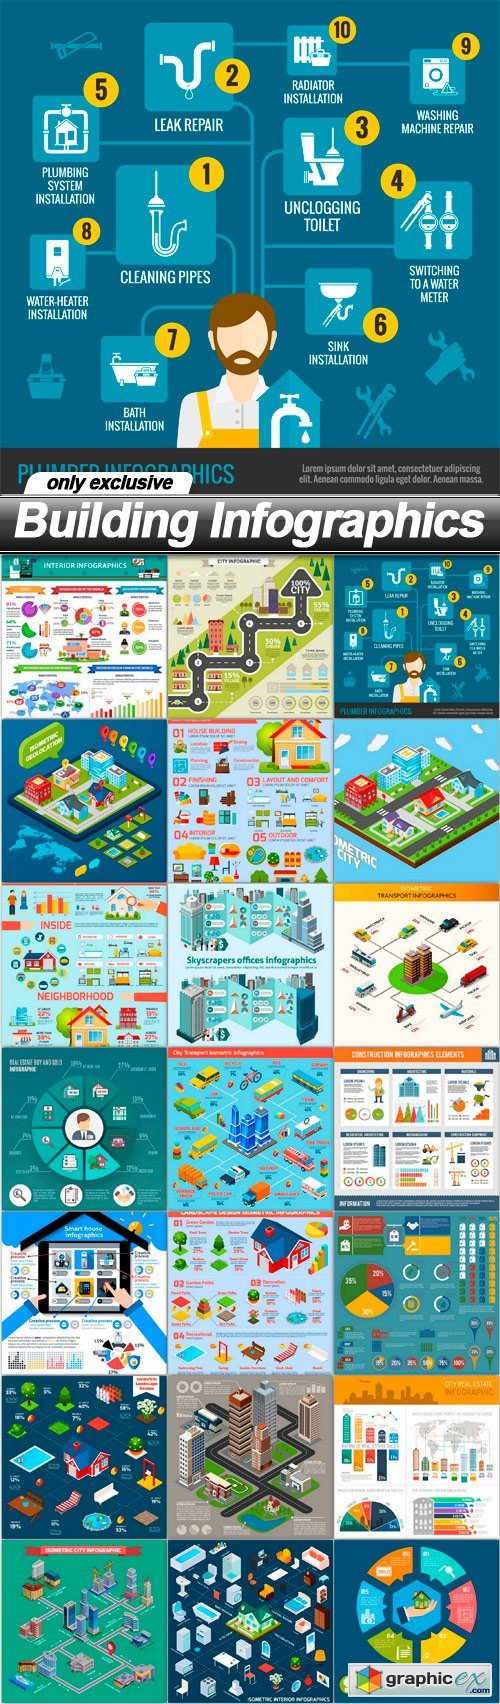 Building Infographics - 21 EPS